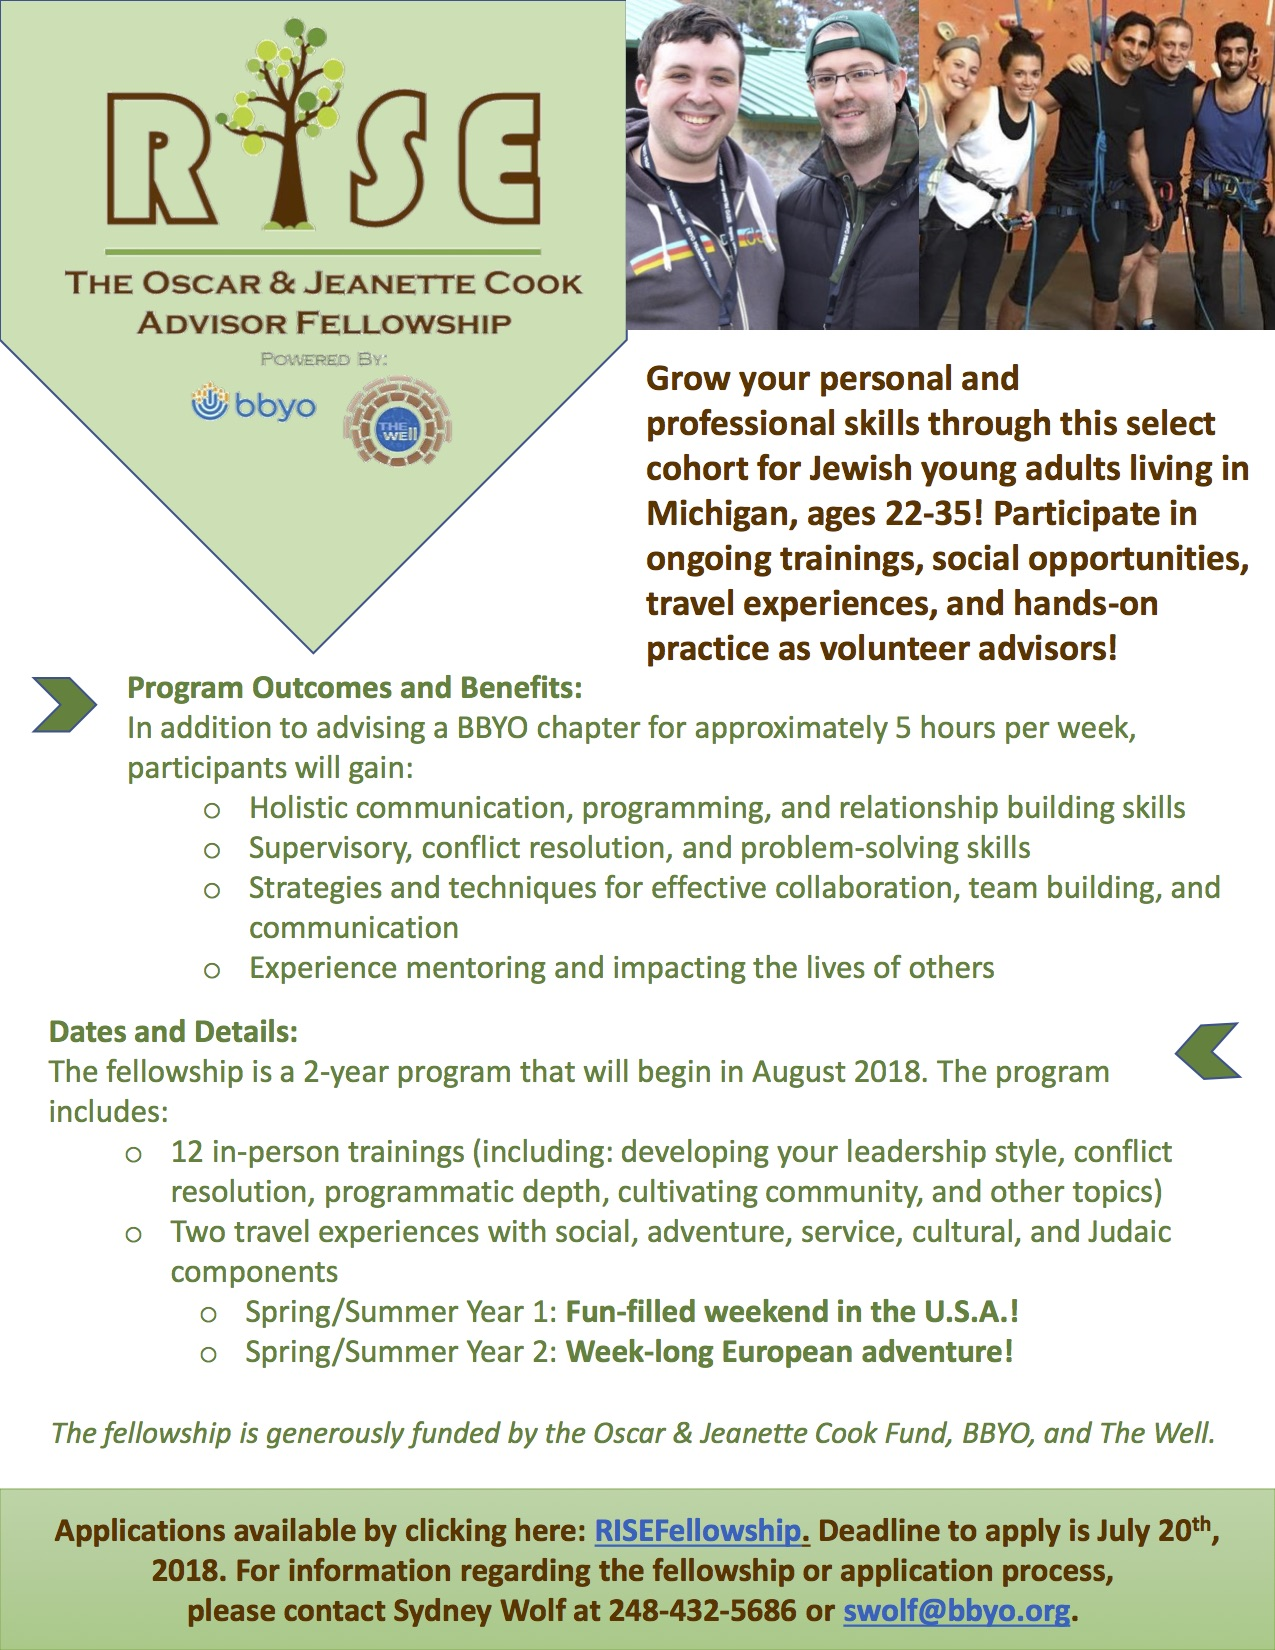 RISE Advisor Fellowship Flyer (FINAL).jpg